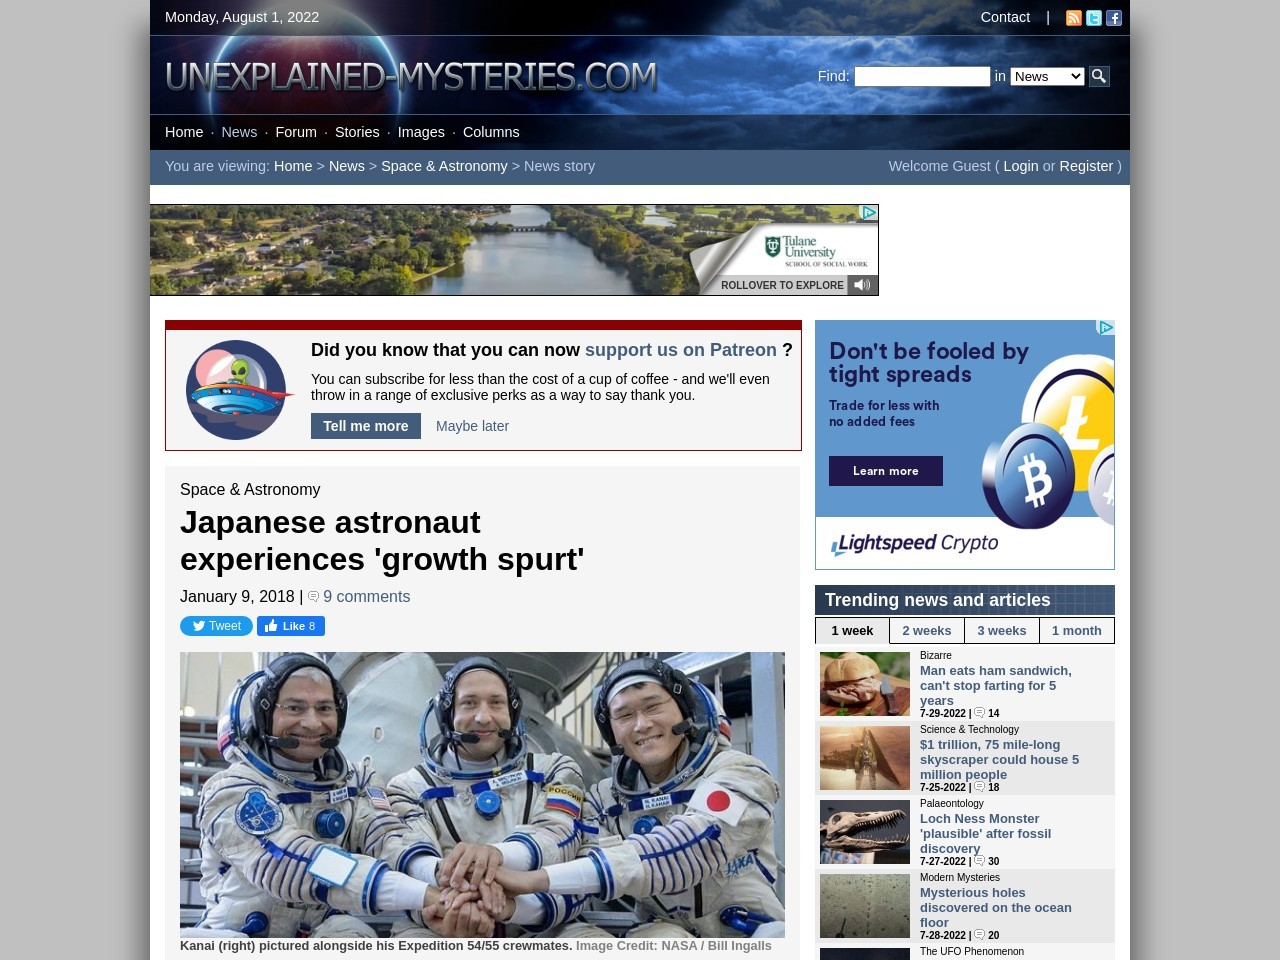 Japanese astronaut experiences 'growth spurt'